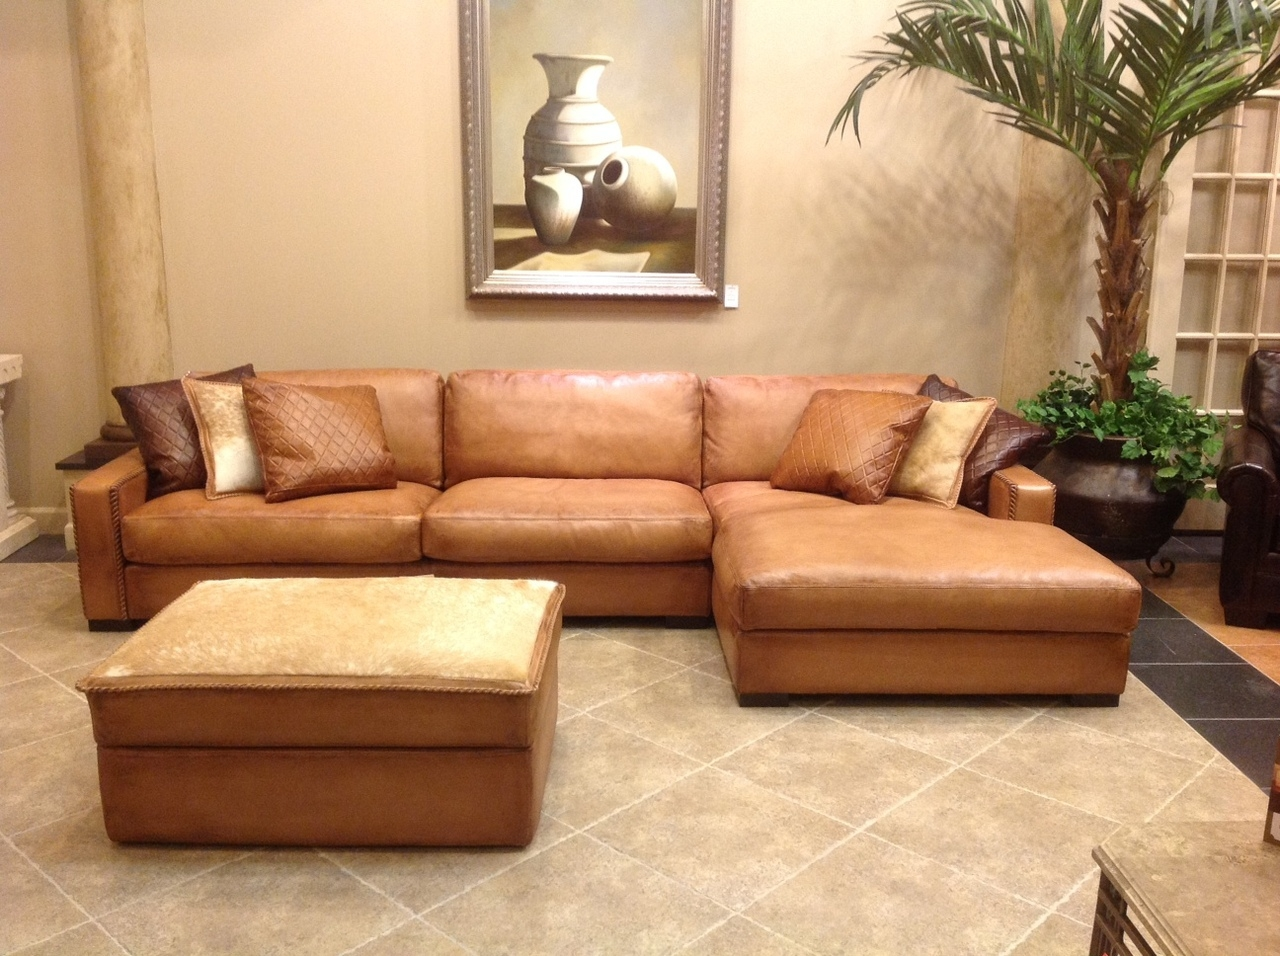 Furniture Comfortable Deep Seat Sectional For Your Living Room With Regard To Comfortable Floor Seating (Image 10 of 15)